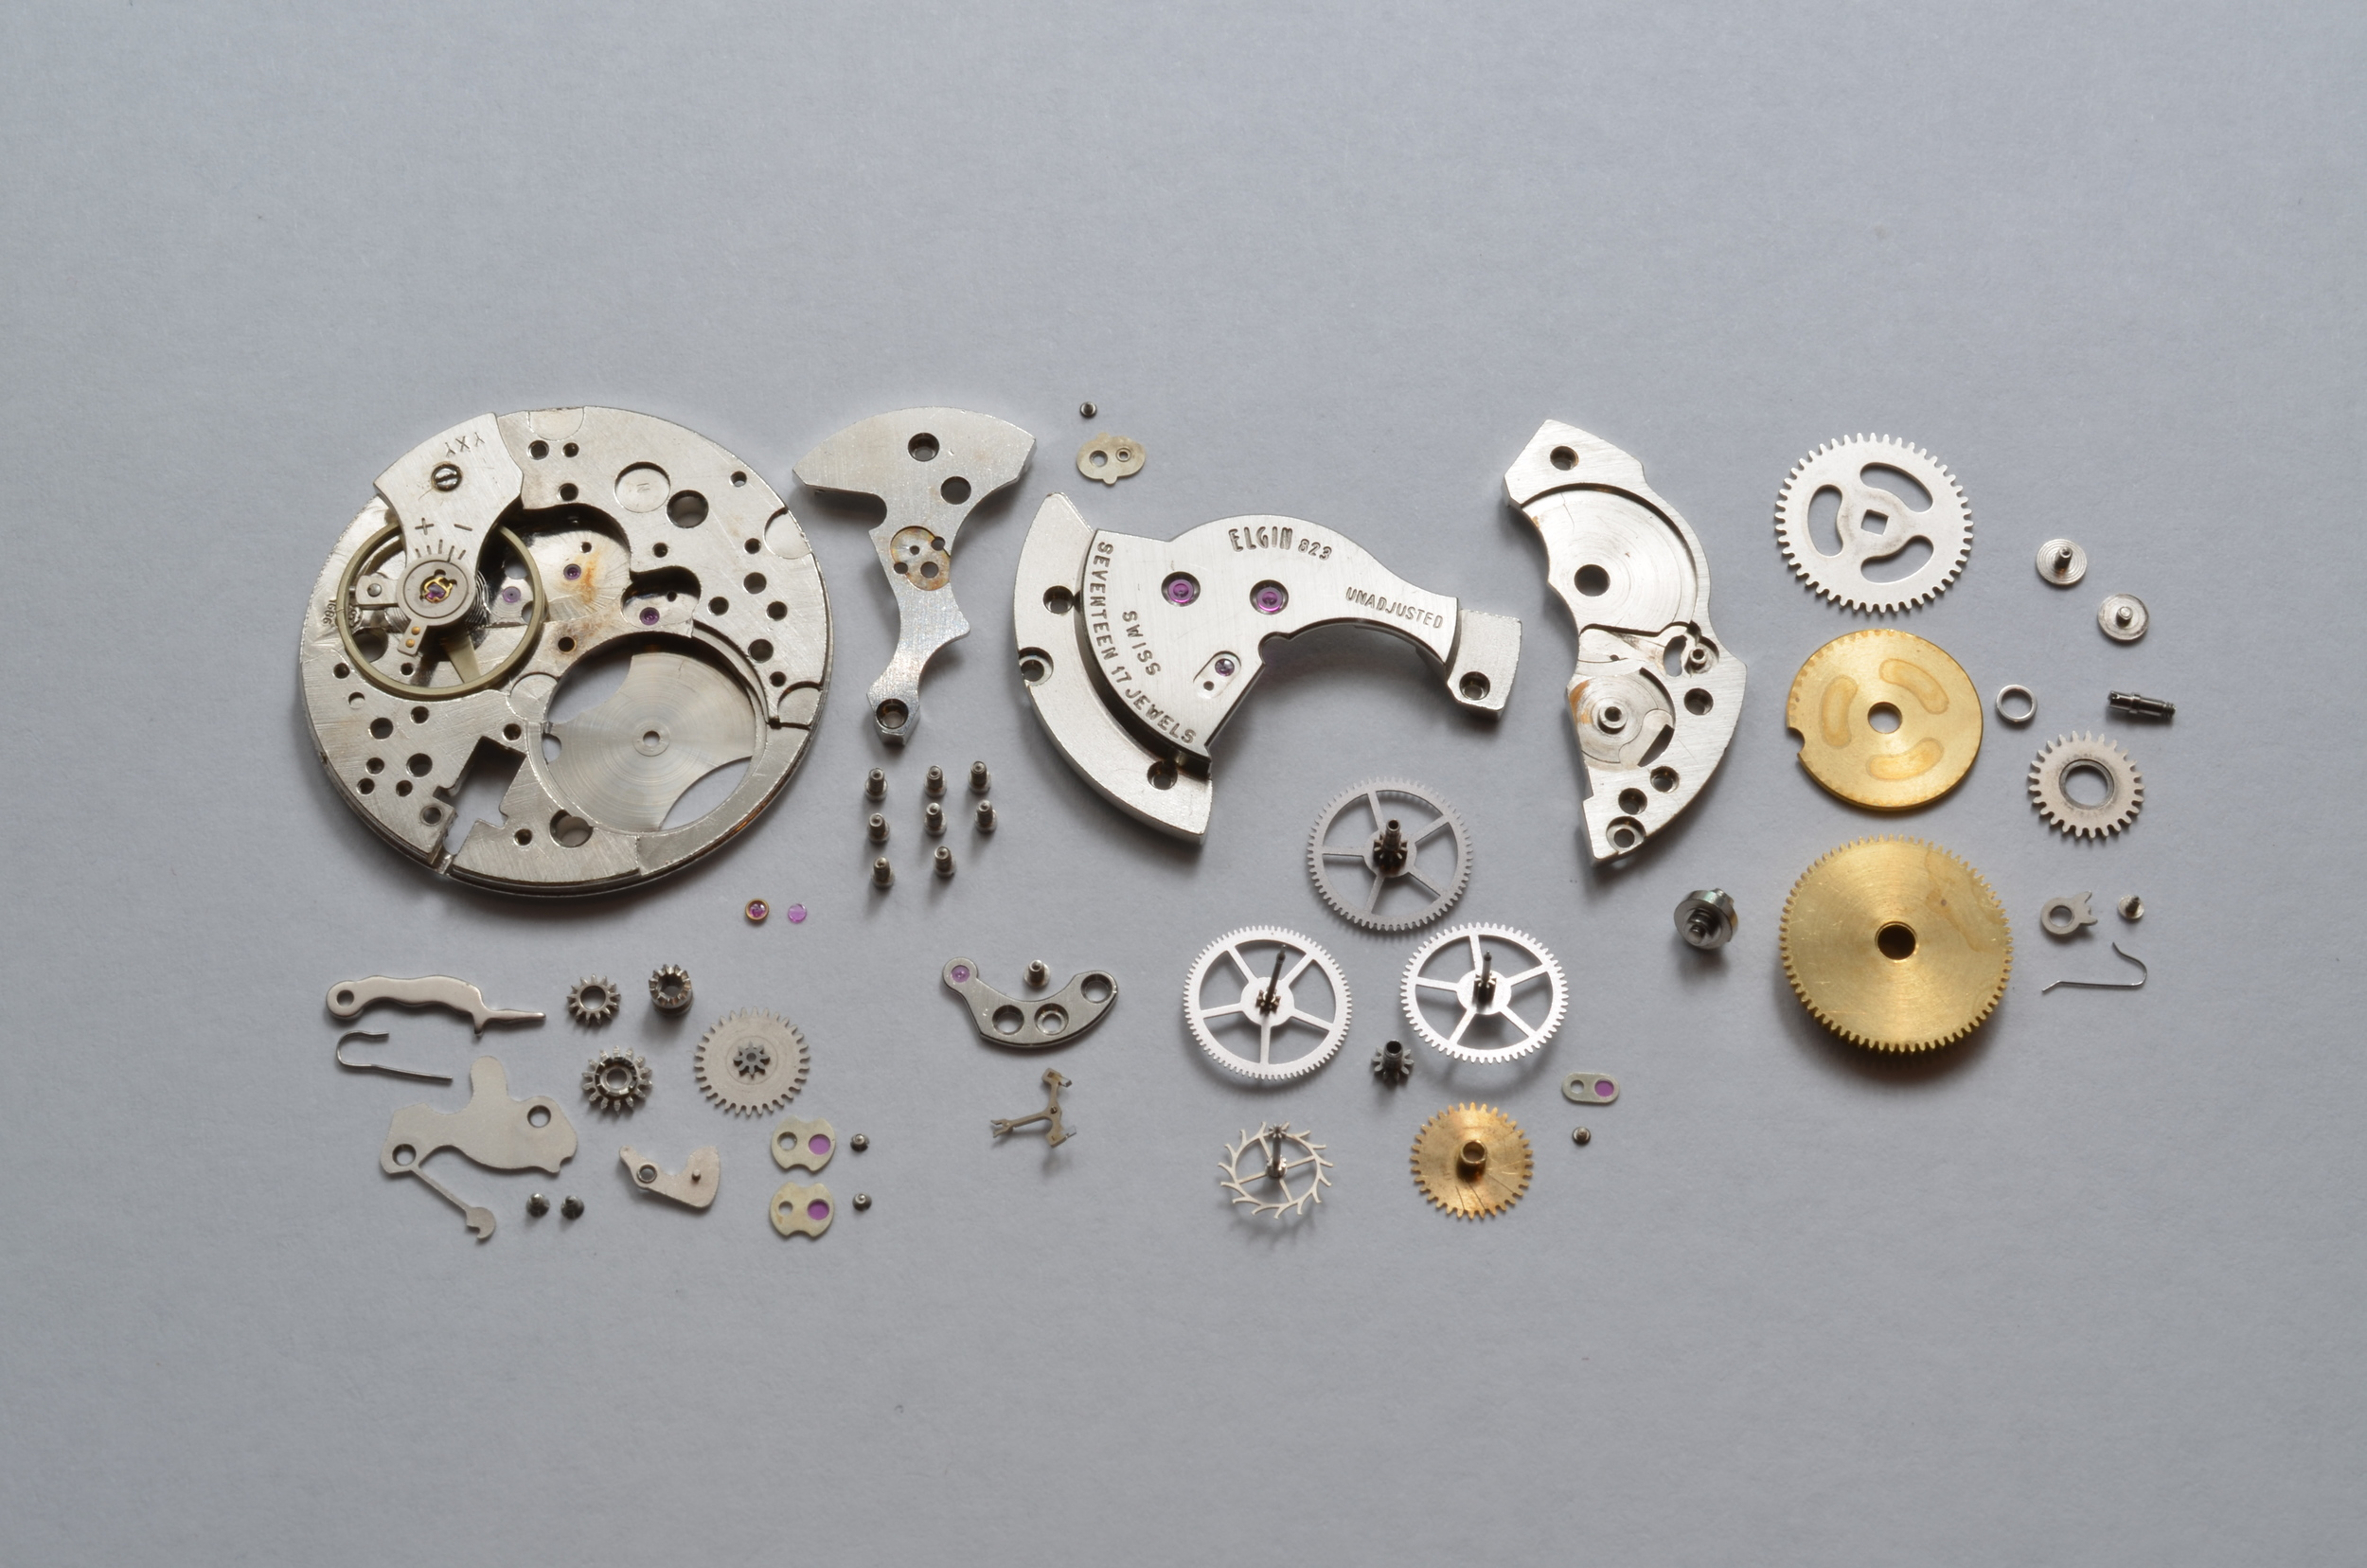 Inspect cleaned parts. Replace worn or broken parts.